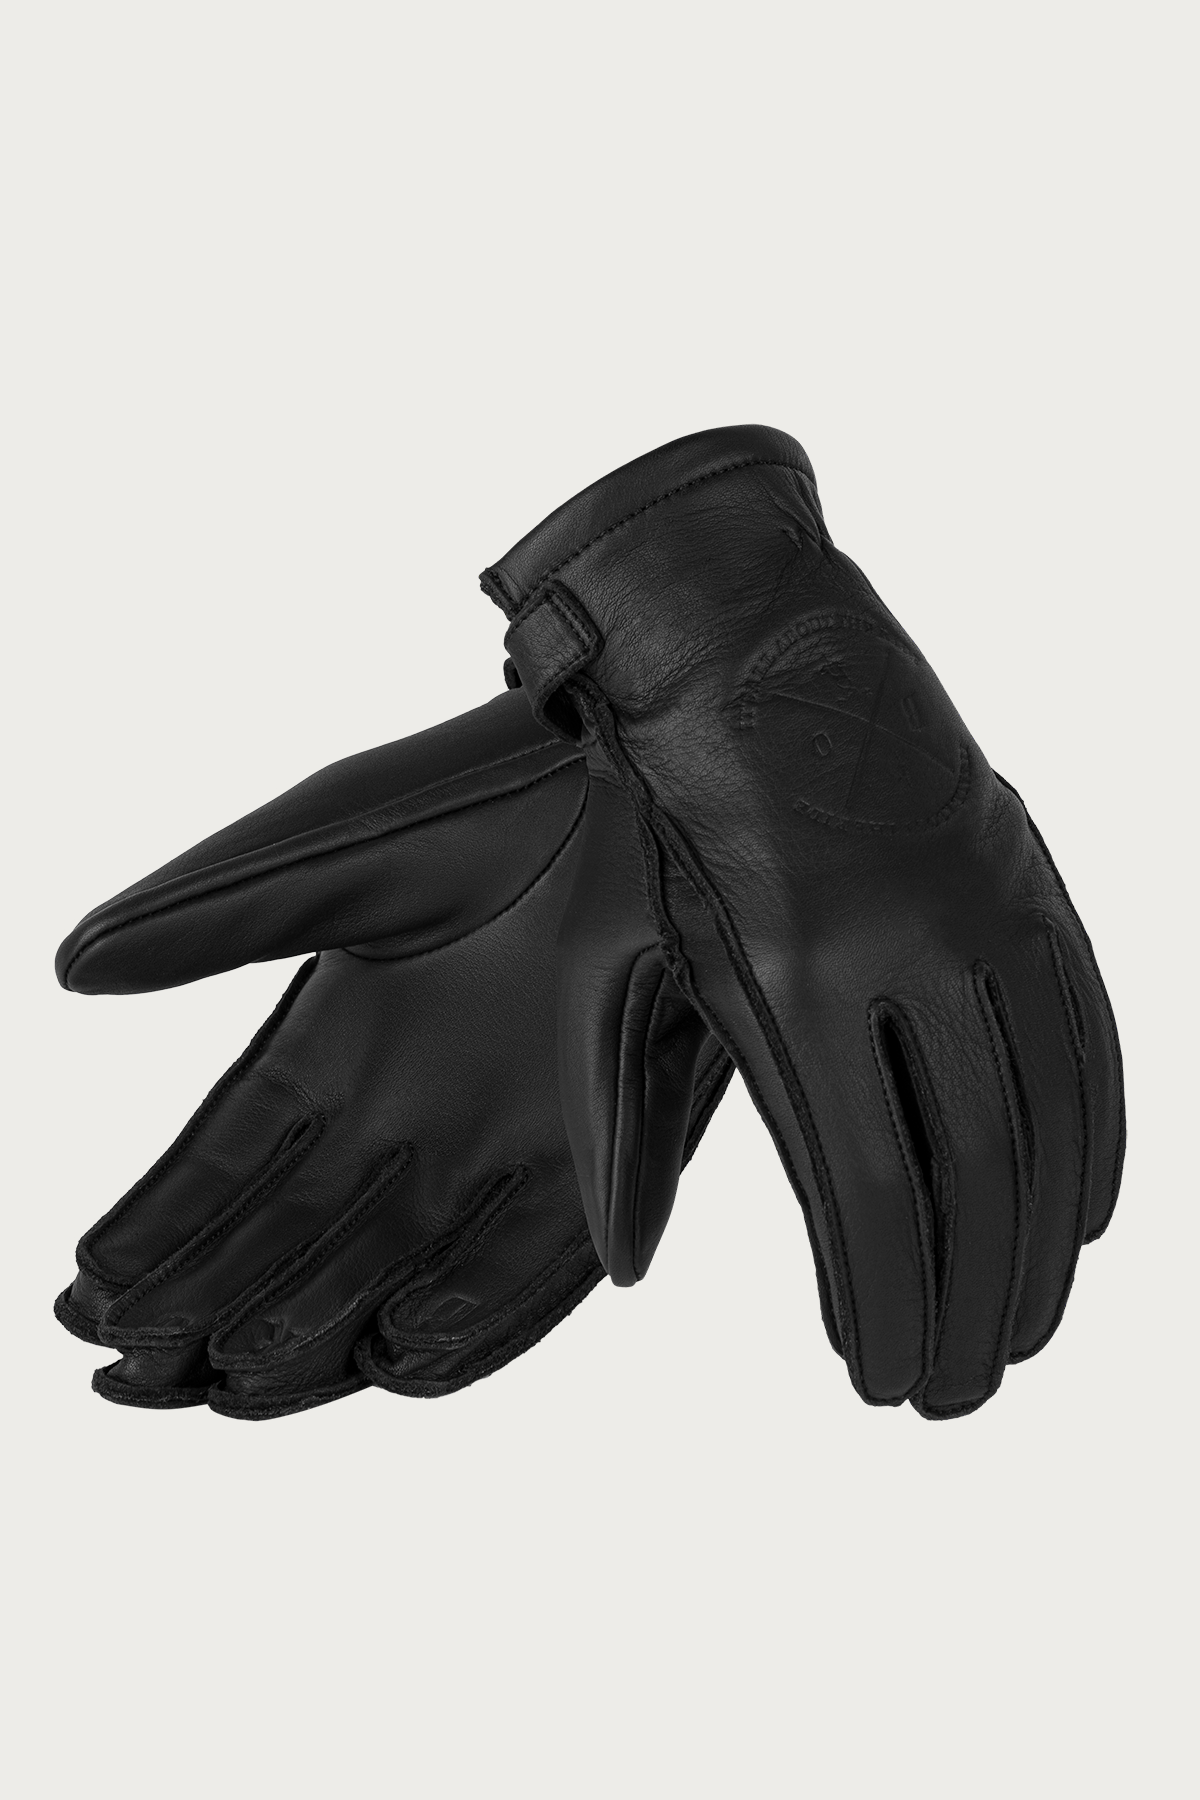 Alaska Lady Black Motorcycle Gloves